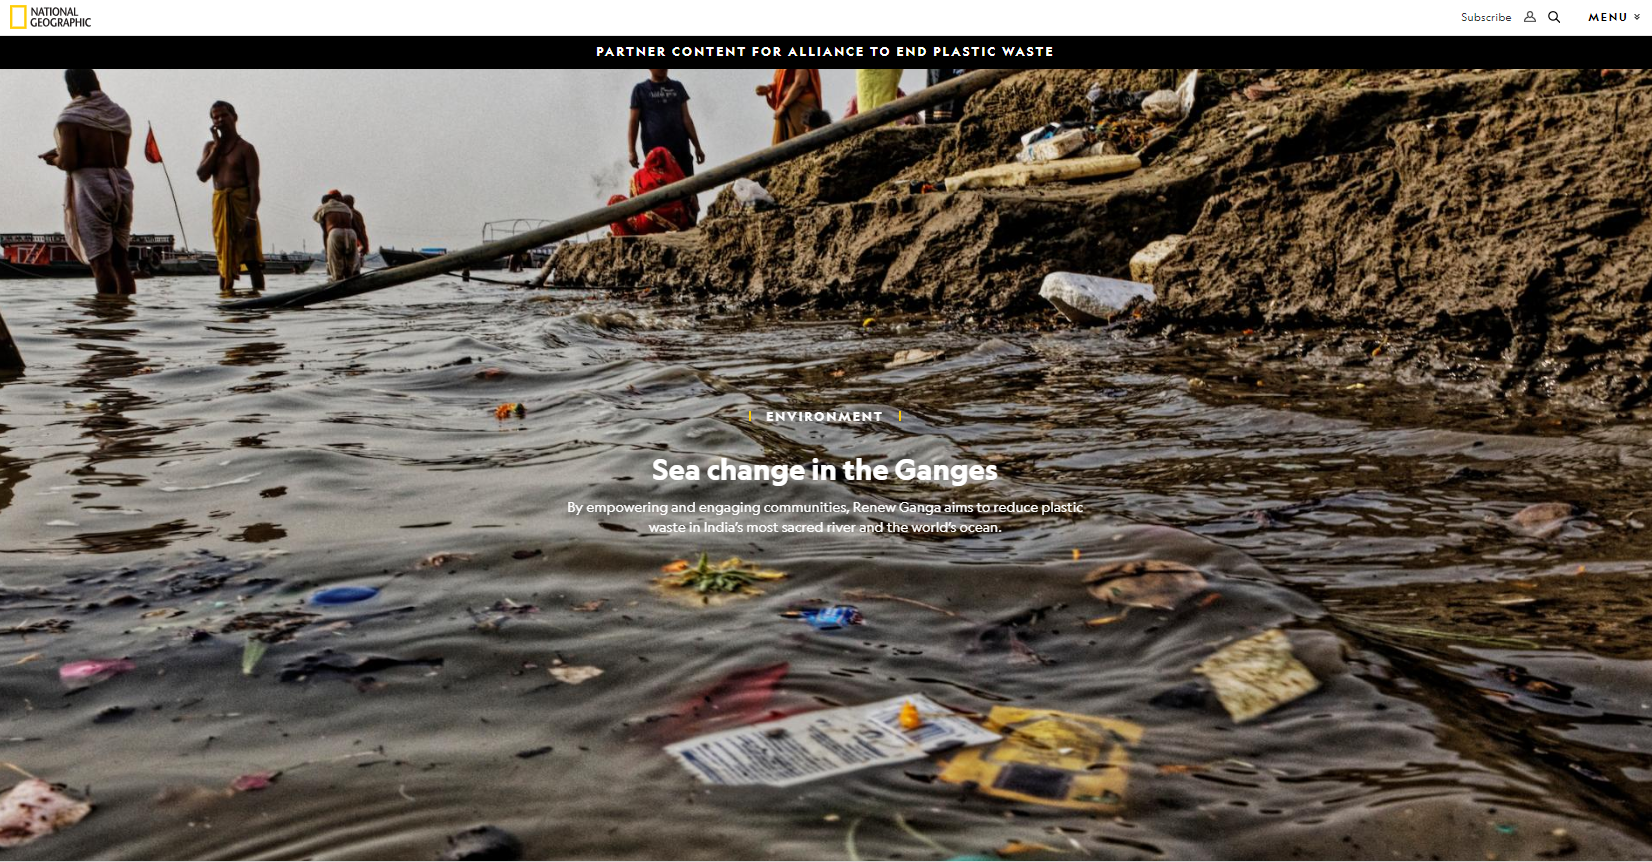 National Geographic Sea change in the Ganges